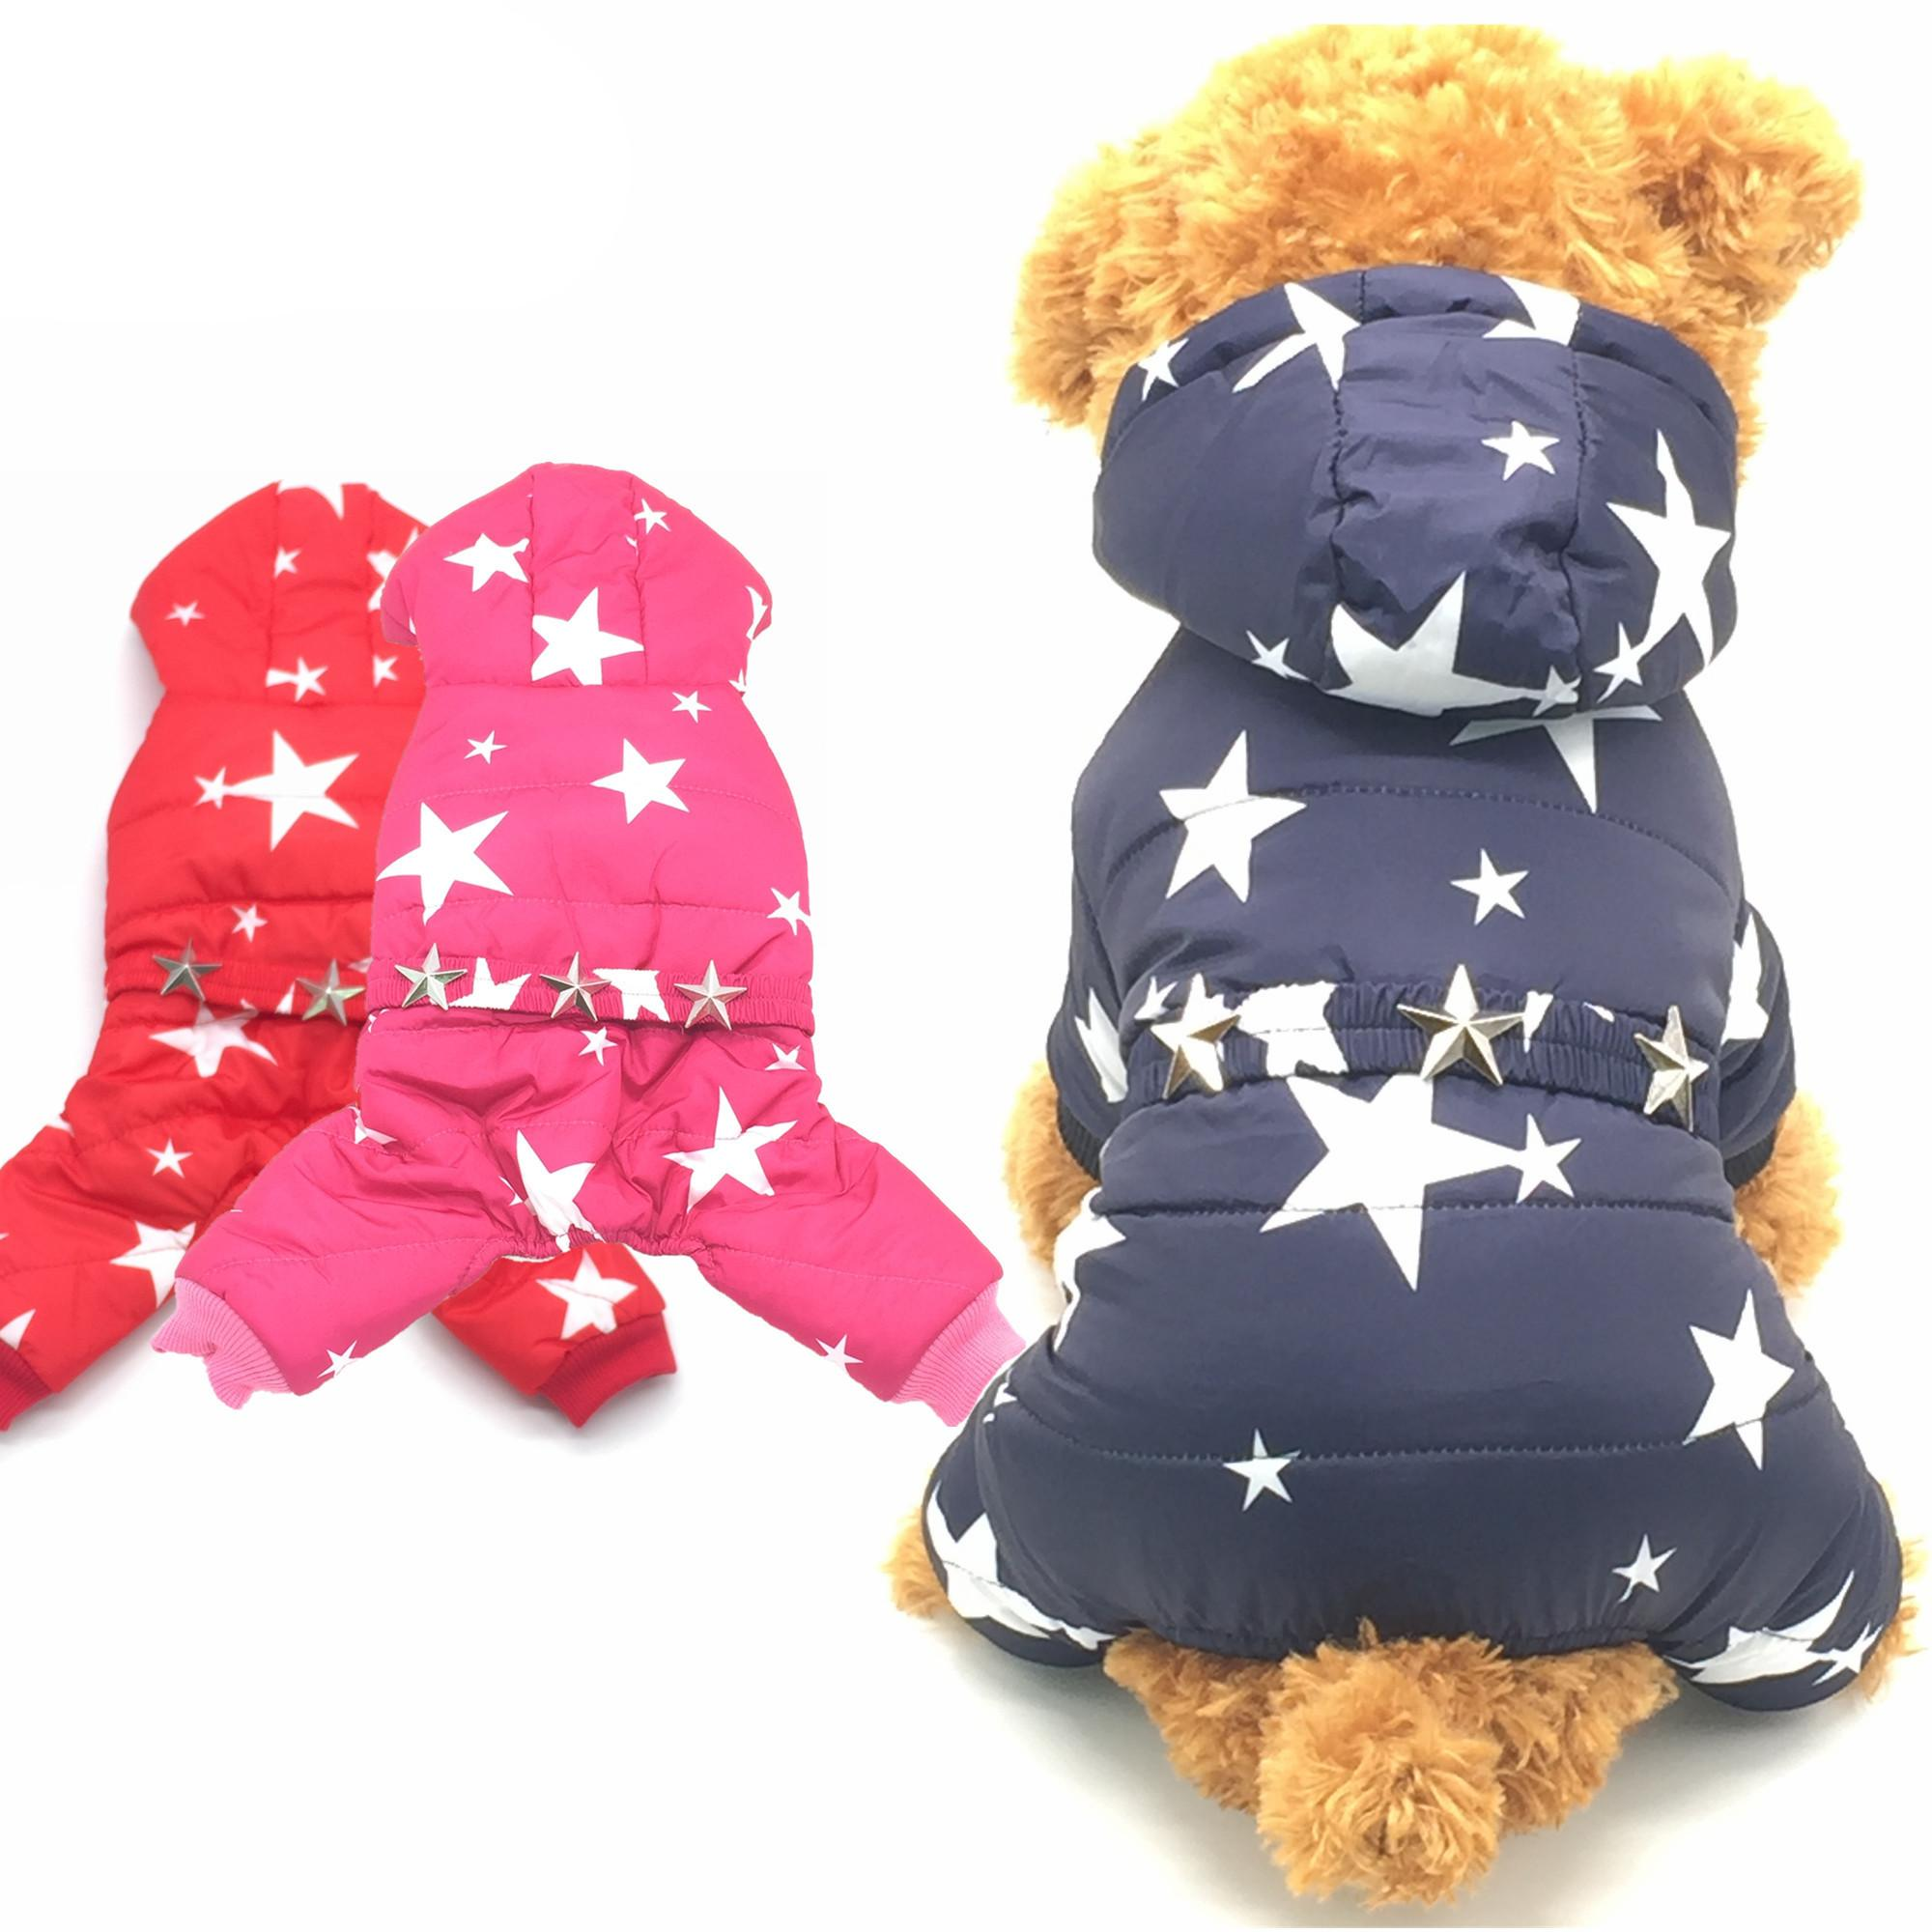 8bf17efbbf831 King -S Pet Dogs Pets Clothing Coat Jacket Teddy Chihuahua More Stars  Clothes Small Dogs Four Legs Puppy Leisure Style Size S -Xxl